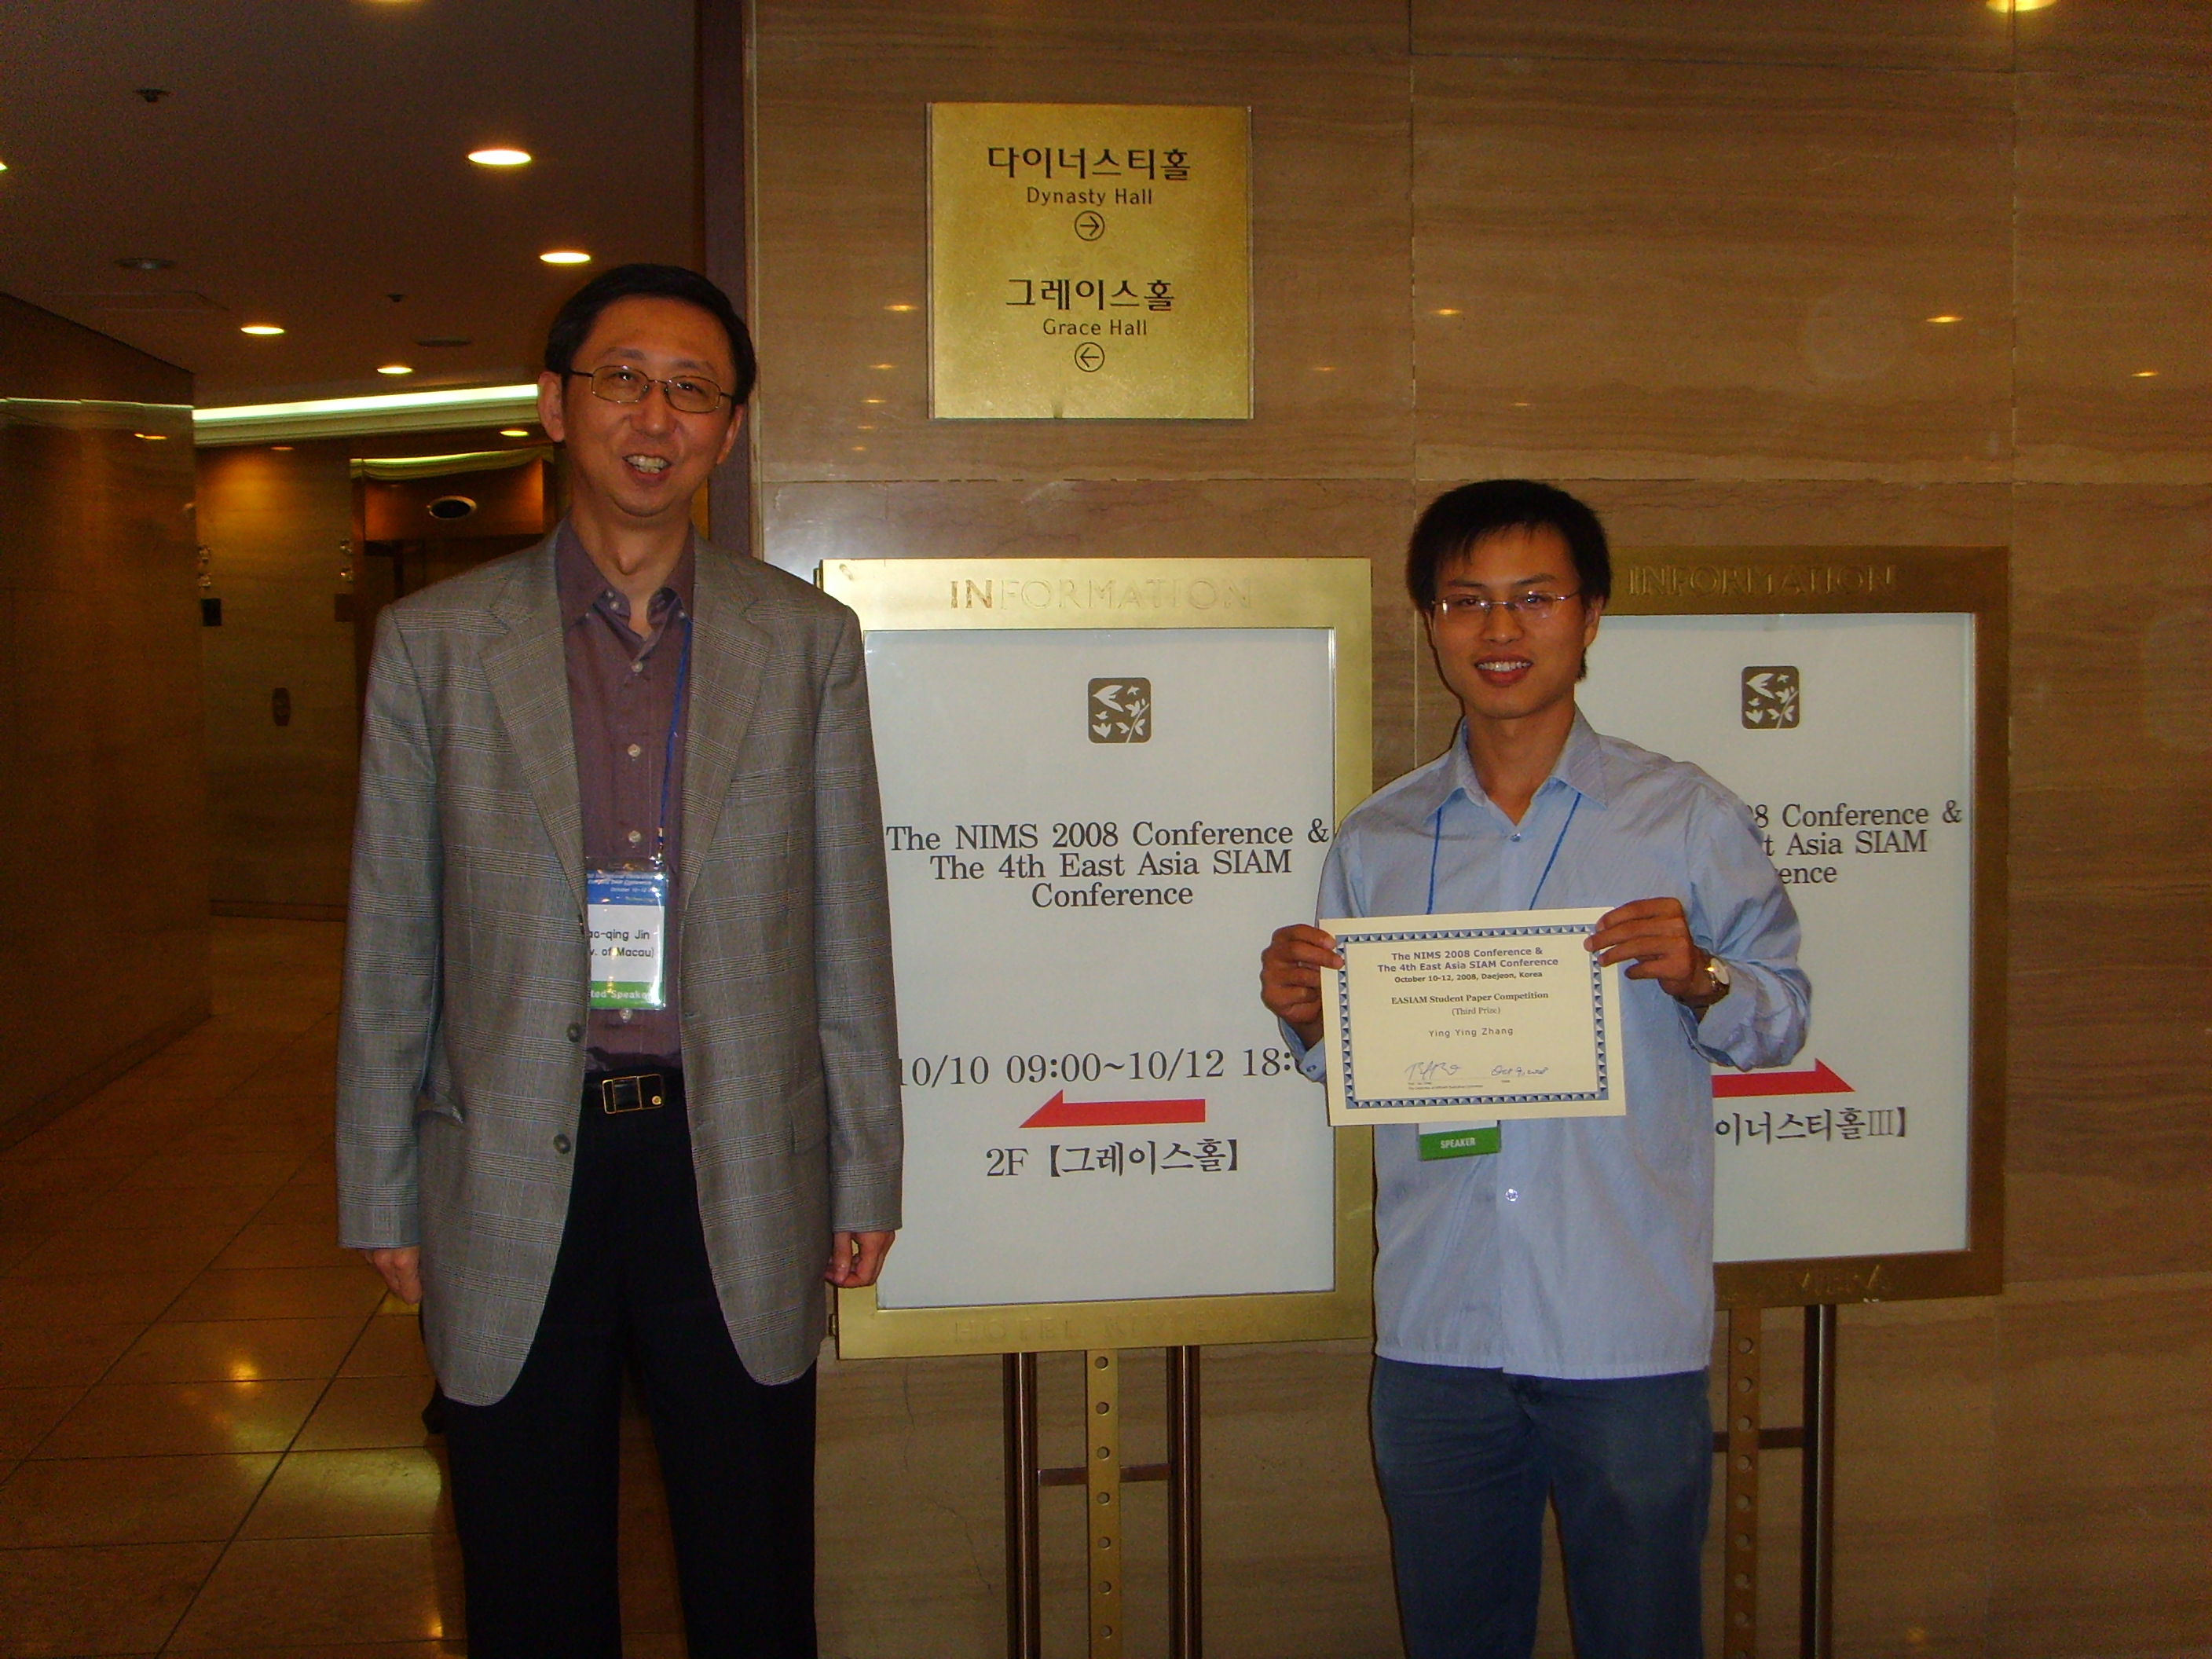 PhD Student of UM Awarded Third Prize at the EASIAM Student Paper ...